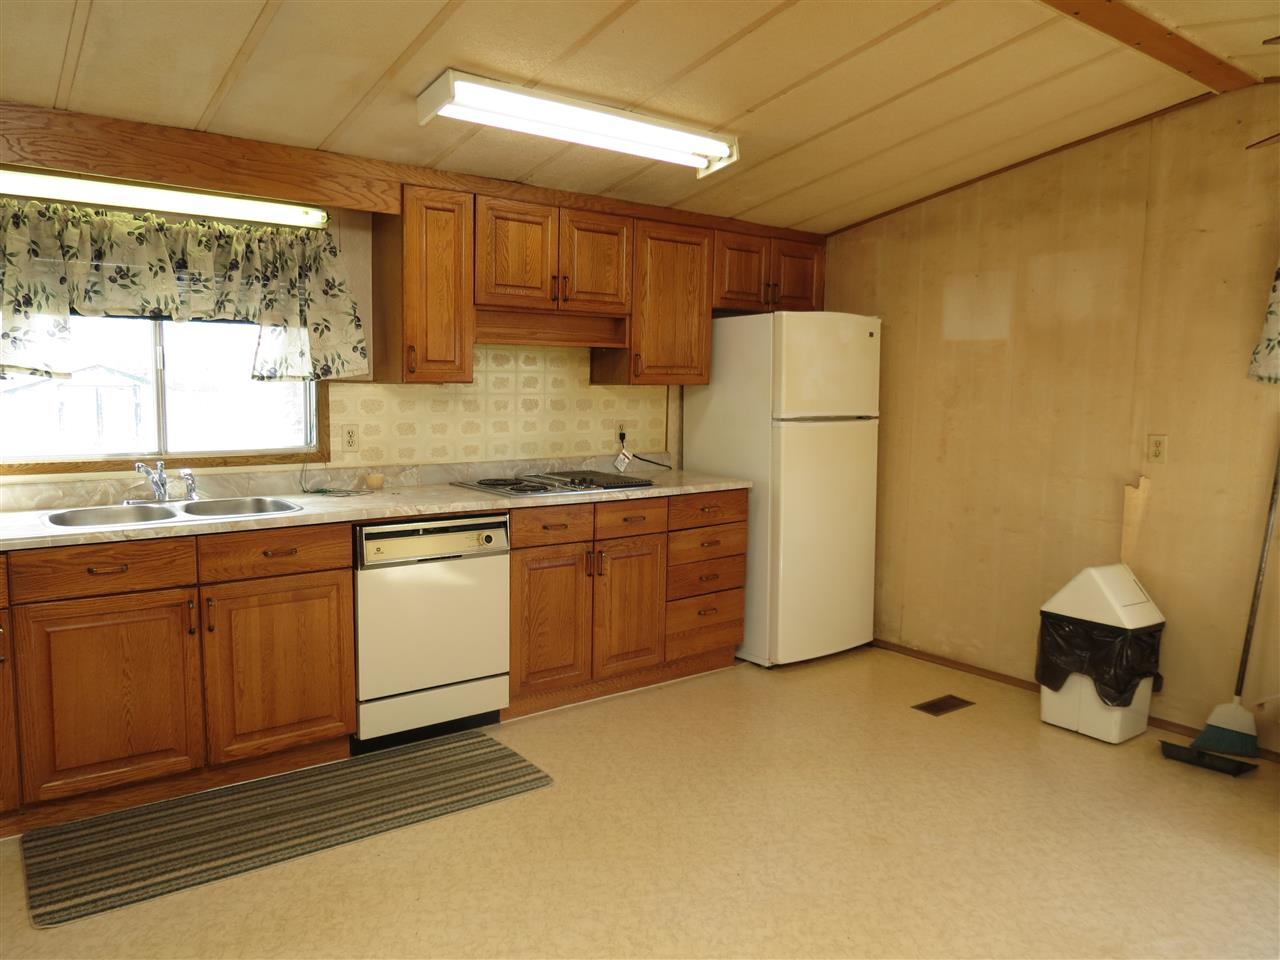 Photo 6: 4715 49A Street: Vimy Manufactured Home for sale : MLS(r) # E4063525